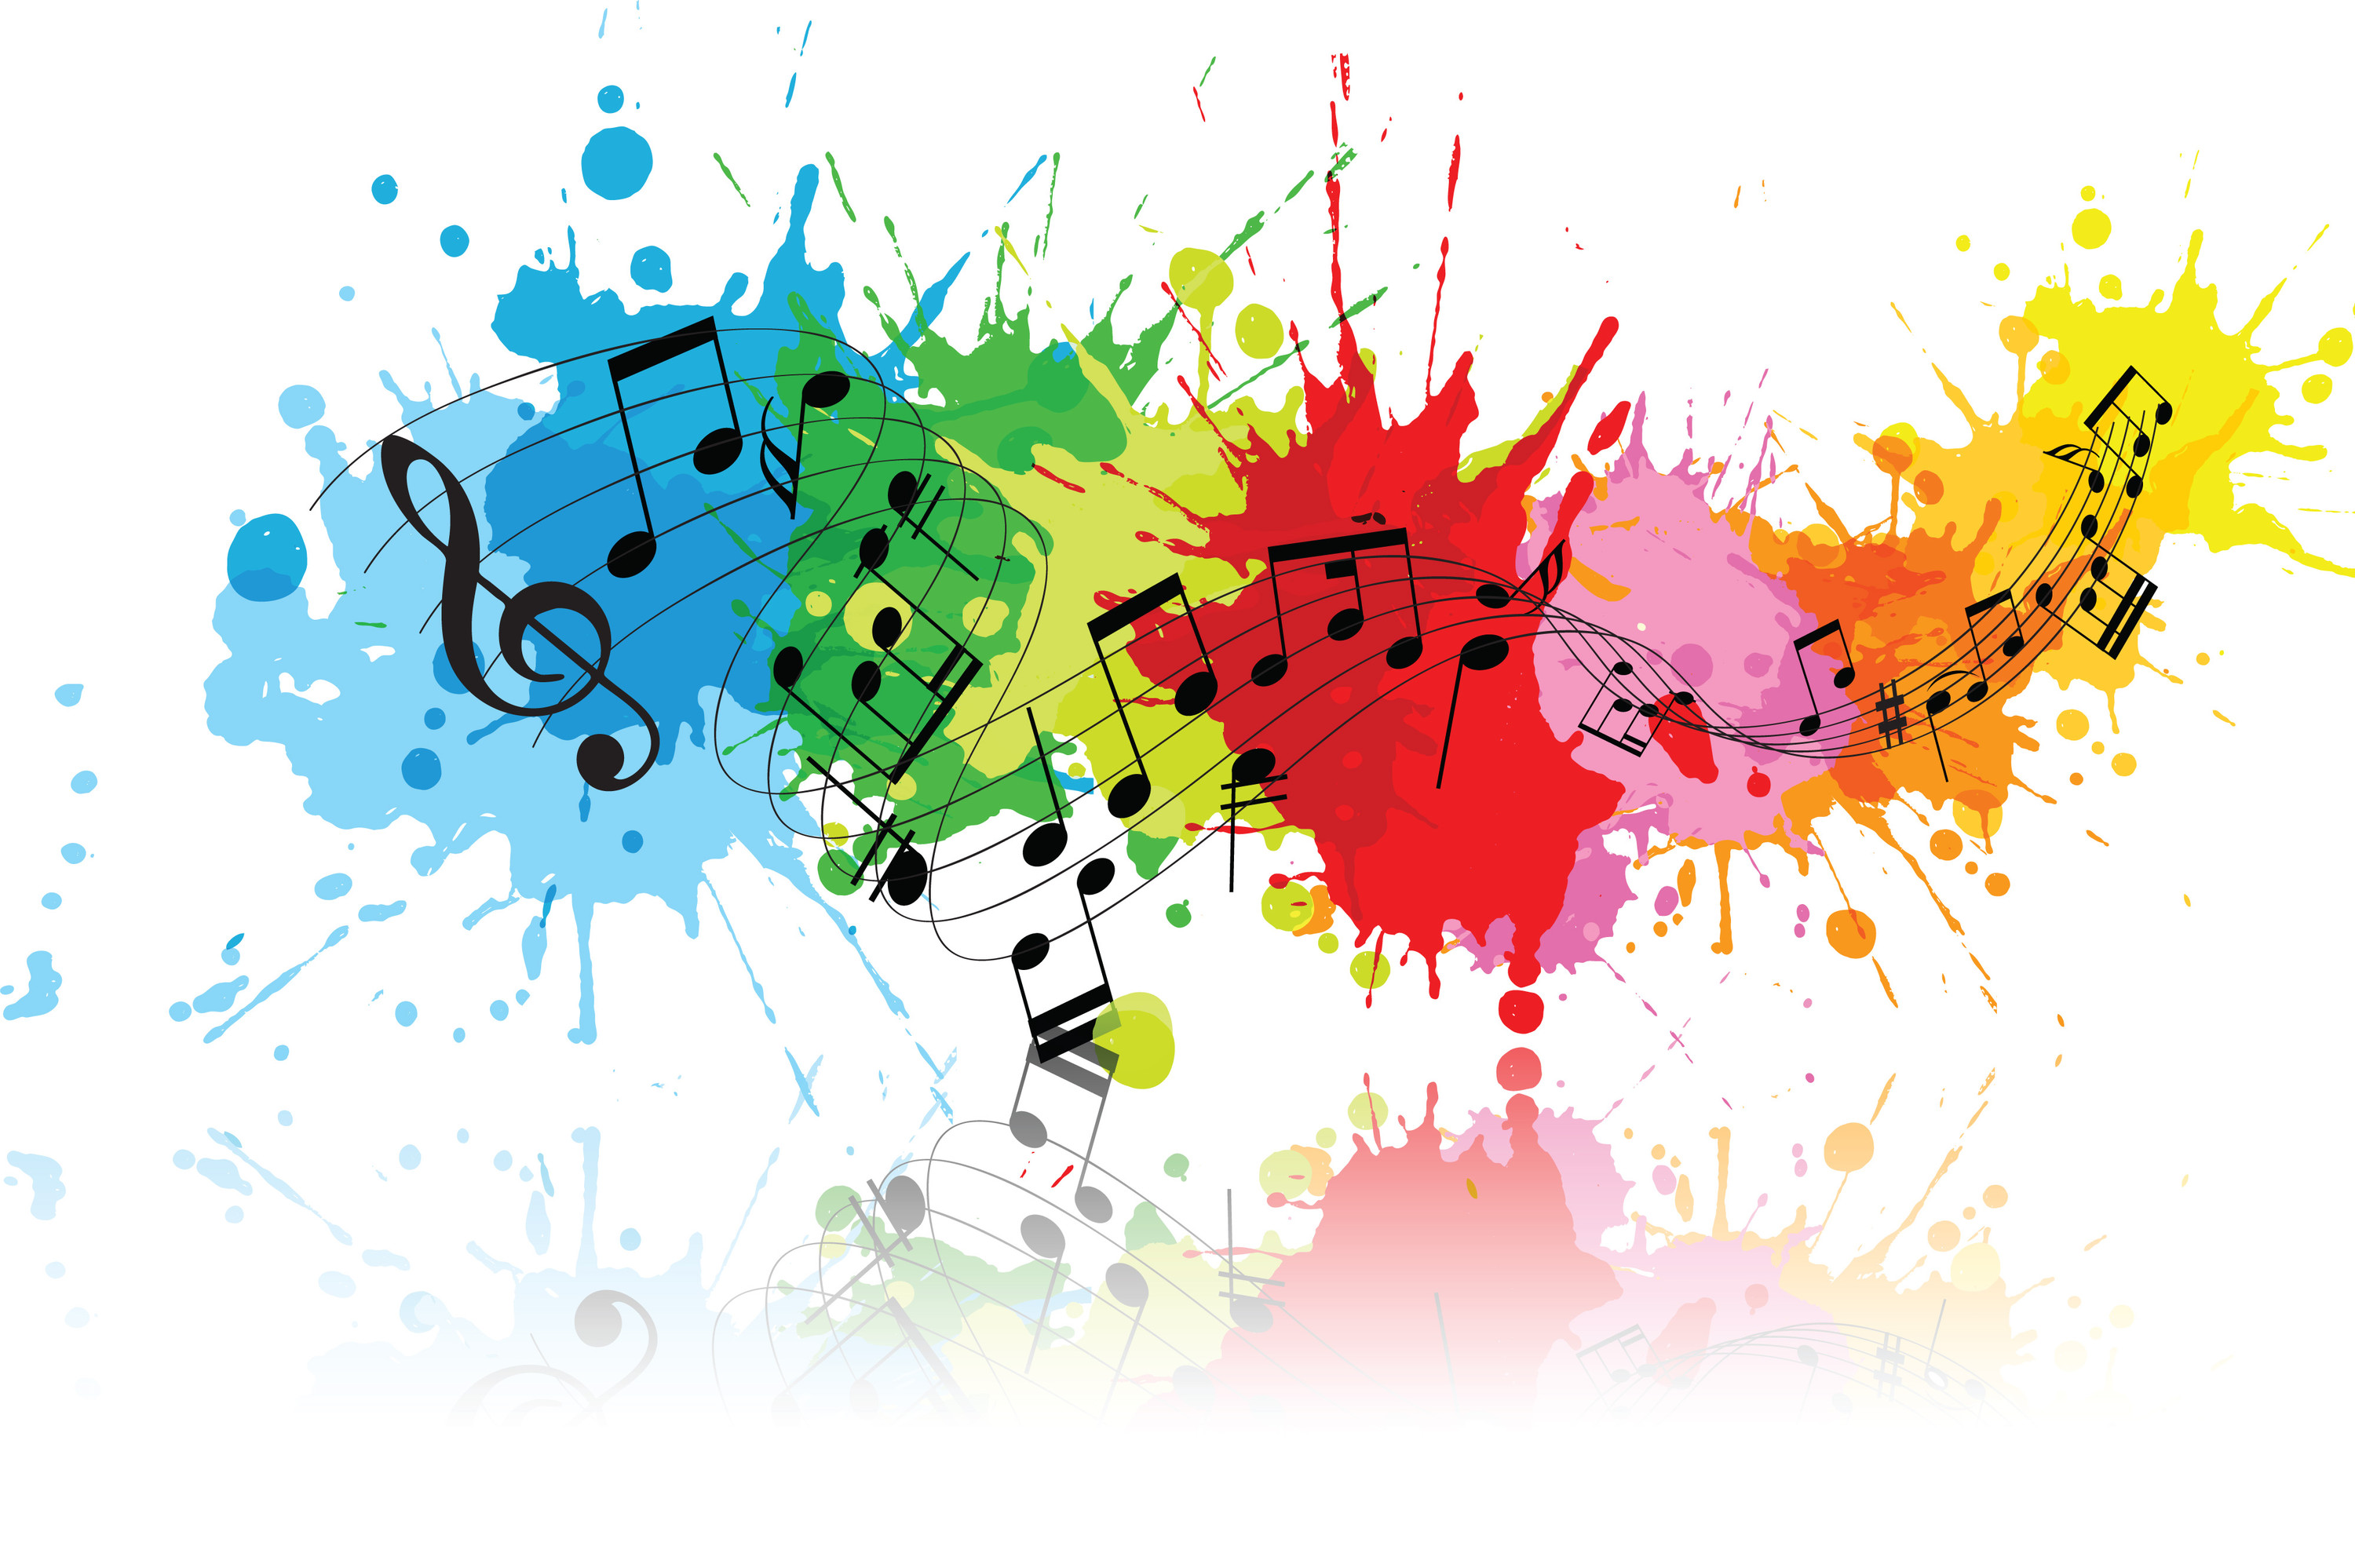 music-colour-splash.jpg